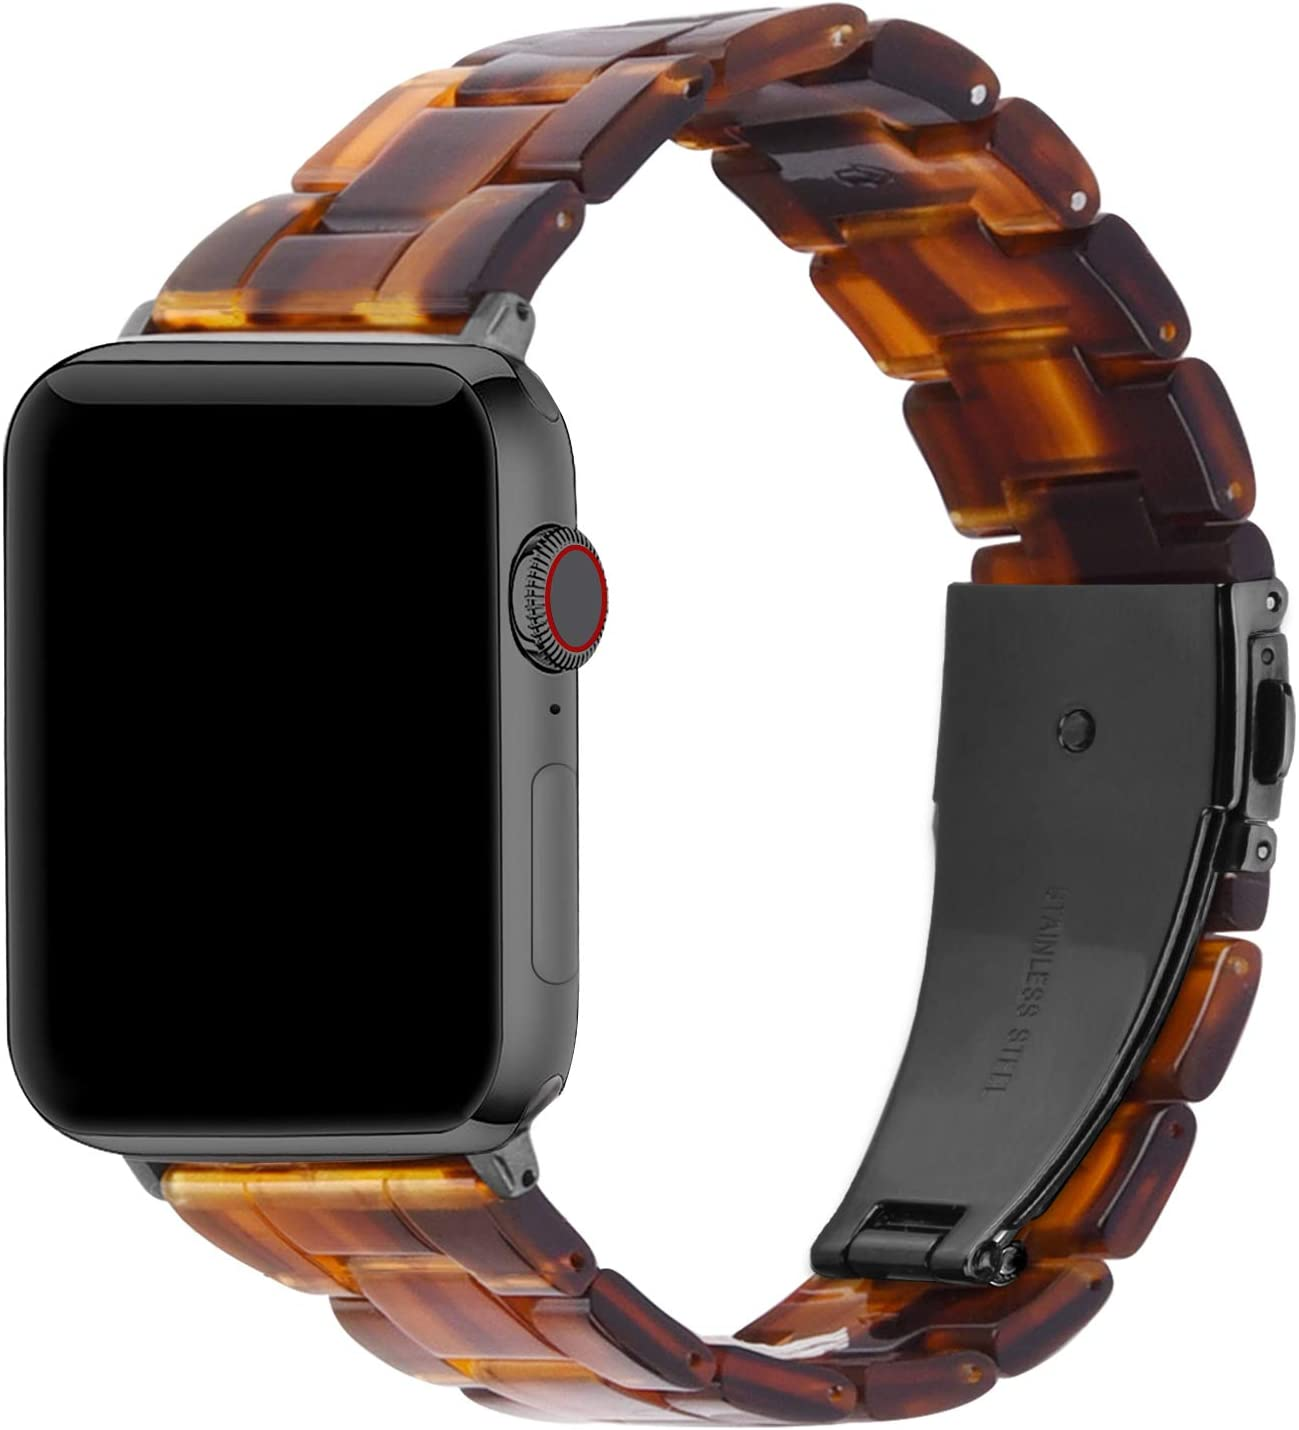 Fullmosa Compatible Apple Watch 38mm/40mm/42mm/44mm, Bright Resin Apple Watch Band for iWatch SE & Series 6/5/4/3/2/1, Hermes, Nike+, Edition, Sport, Dark Amber (Smoky Grey Hardware) 38mm